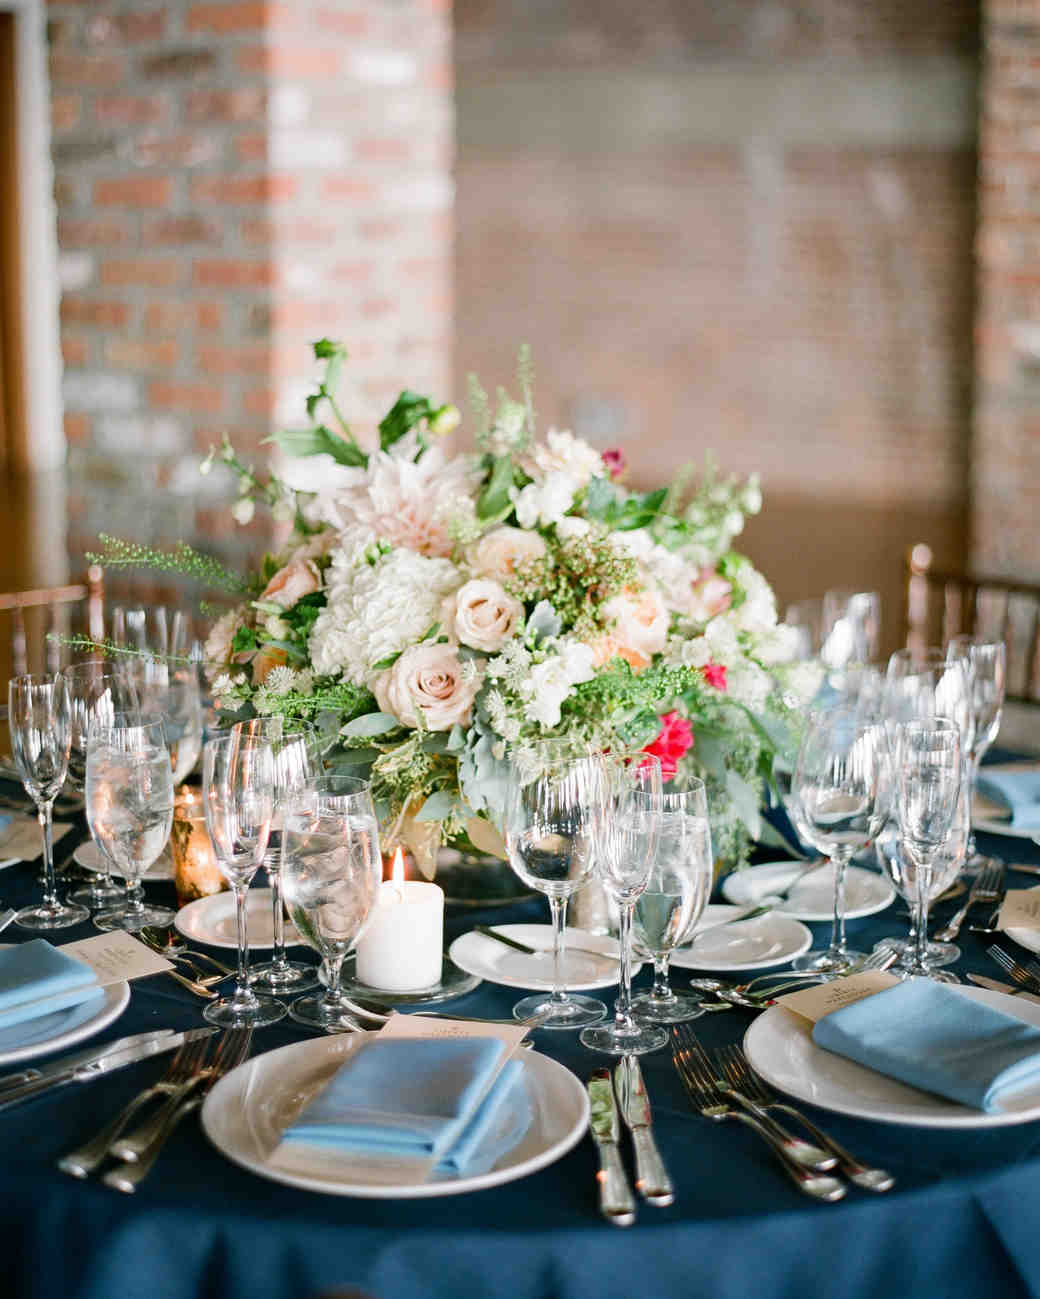 Wedding Table Decorations: 75 Great Wedding Centerpieces